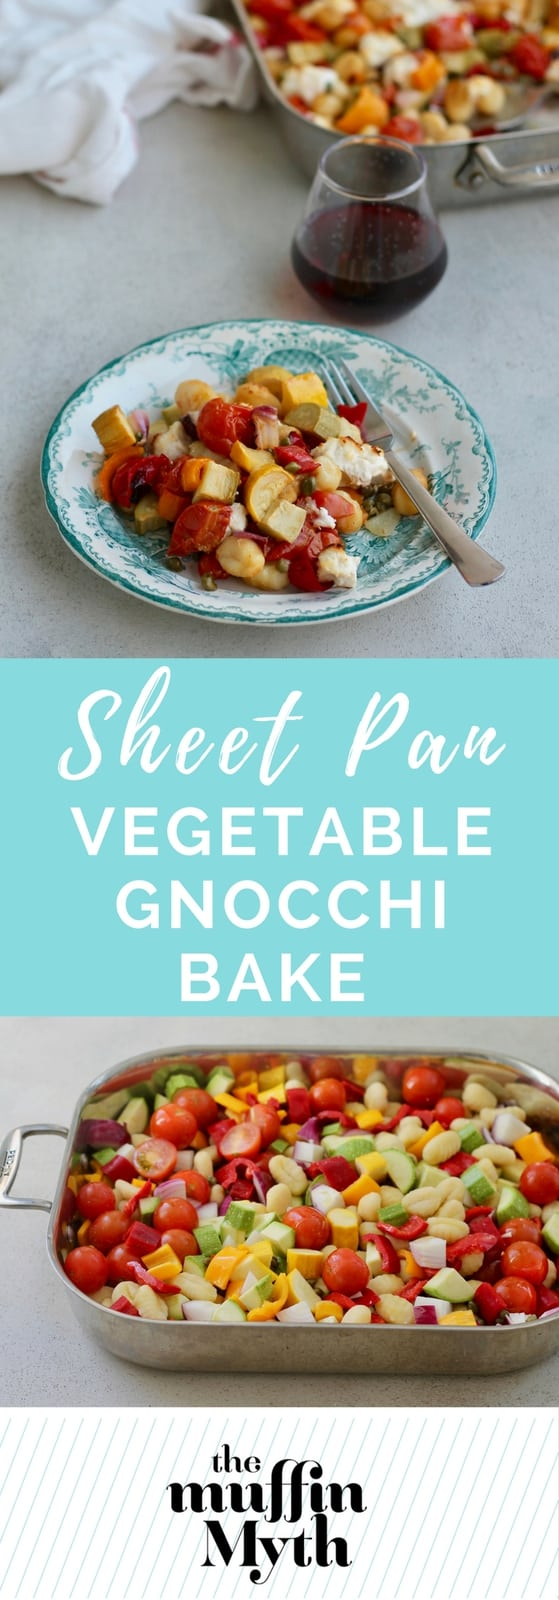 One-Pan Vegetable Gnocchi Bake - a vegetarian sheet pan dinner with zucchini, tomatoes, peppers, gnocchi, and ricotta.